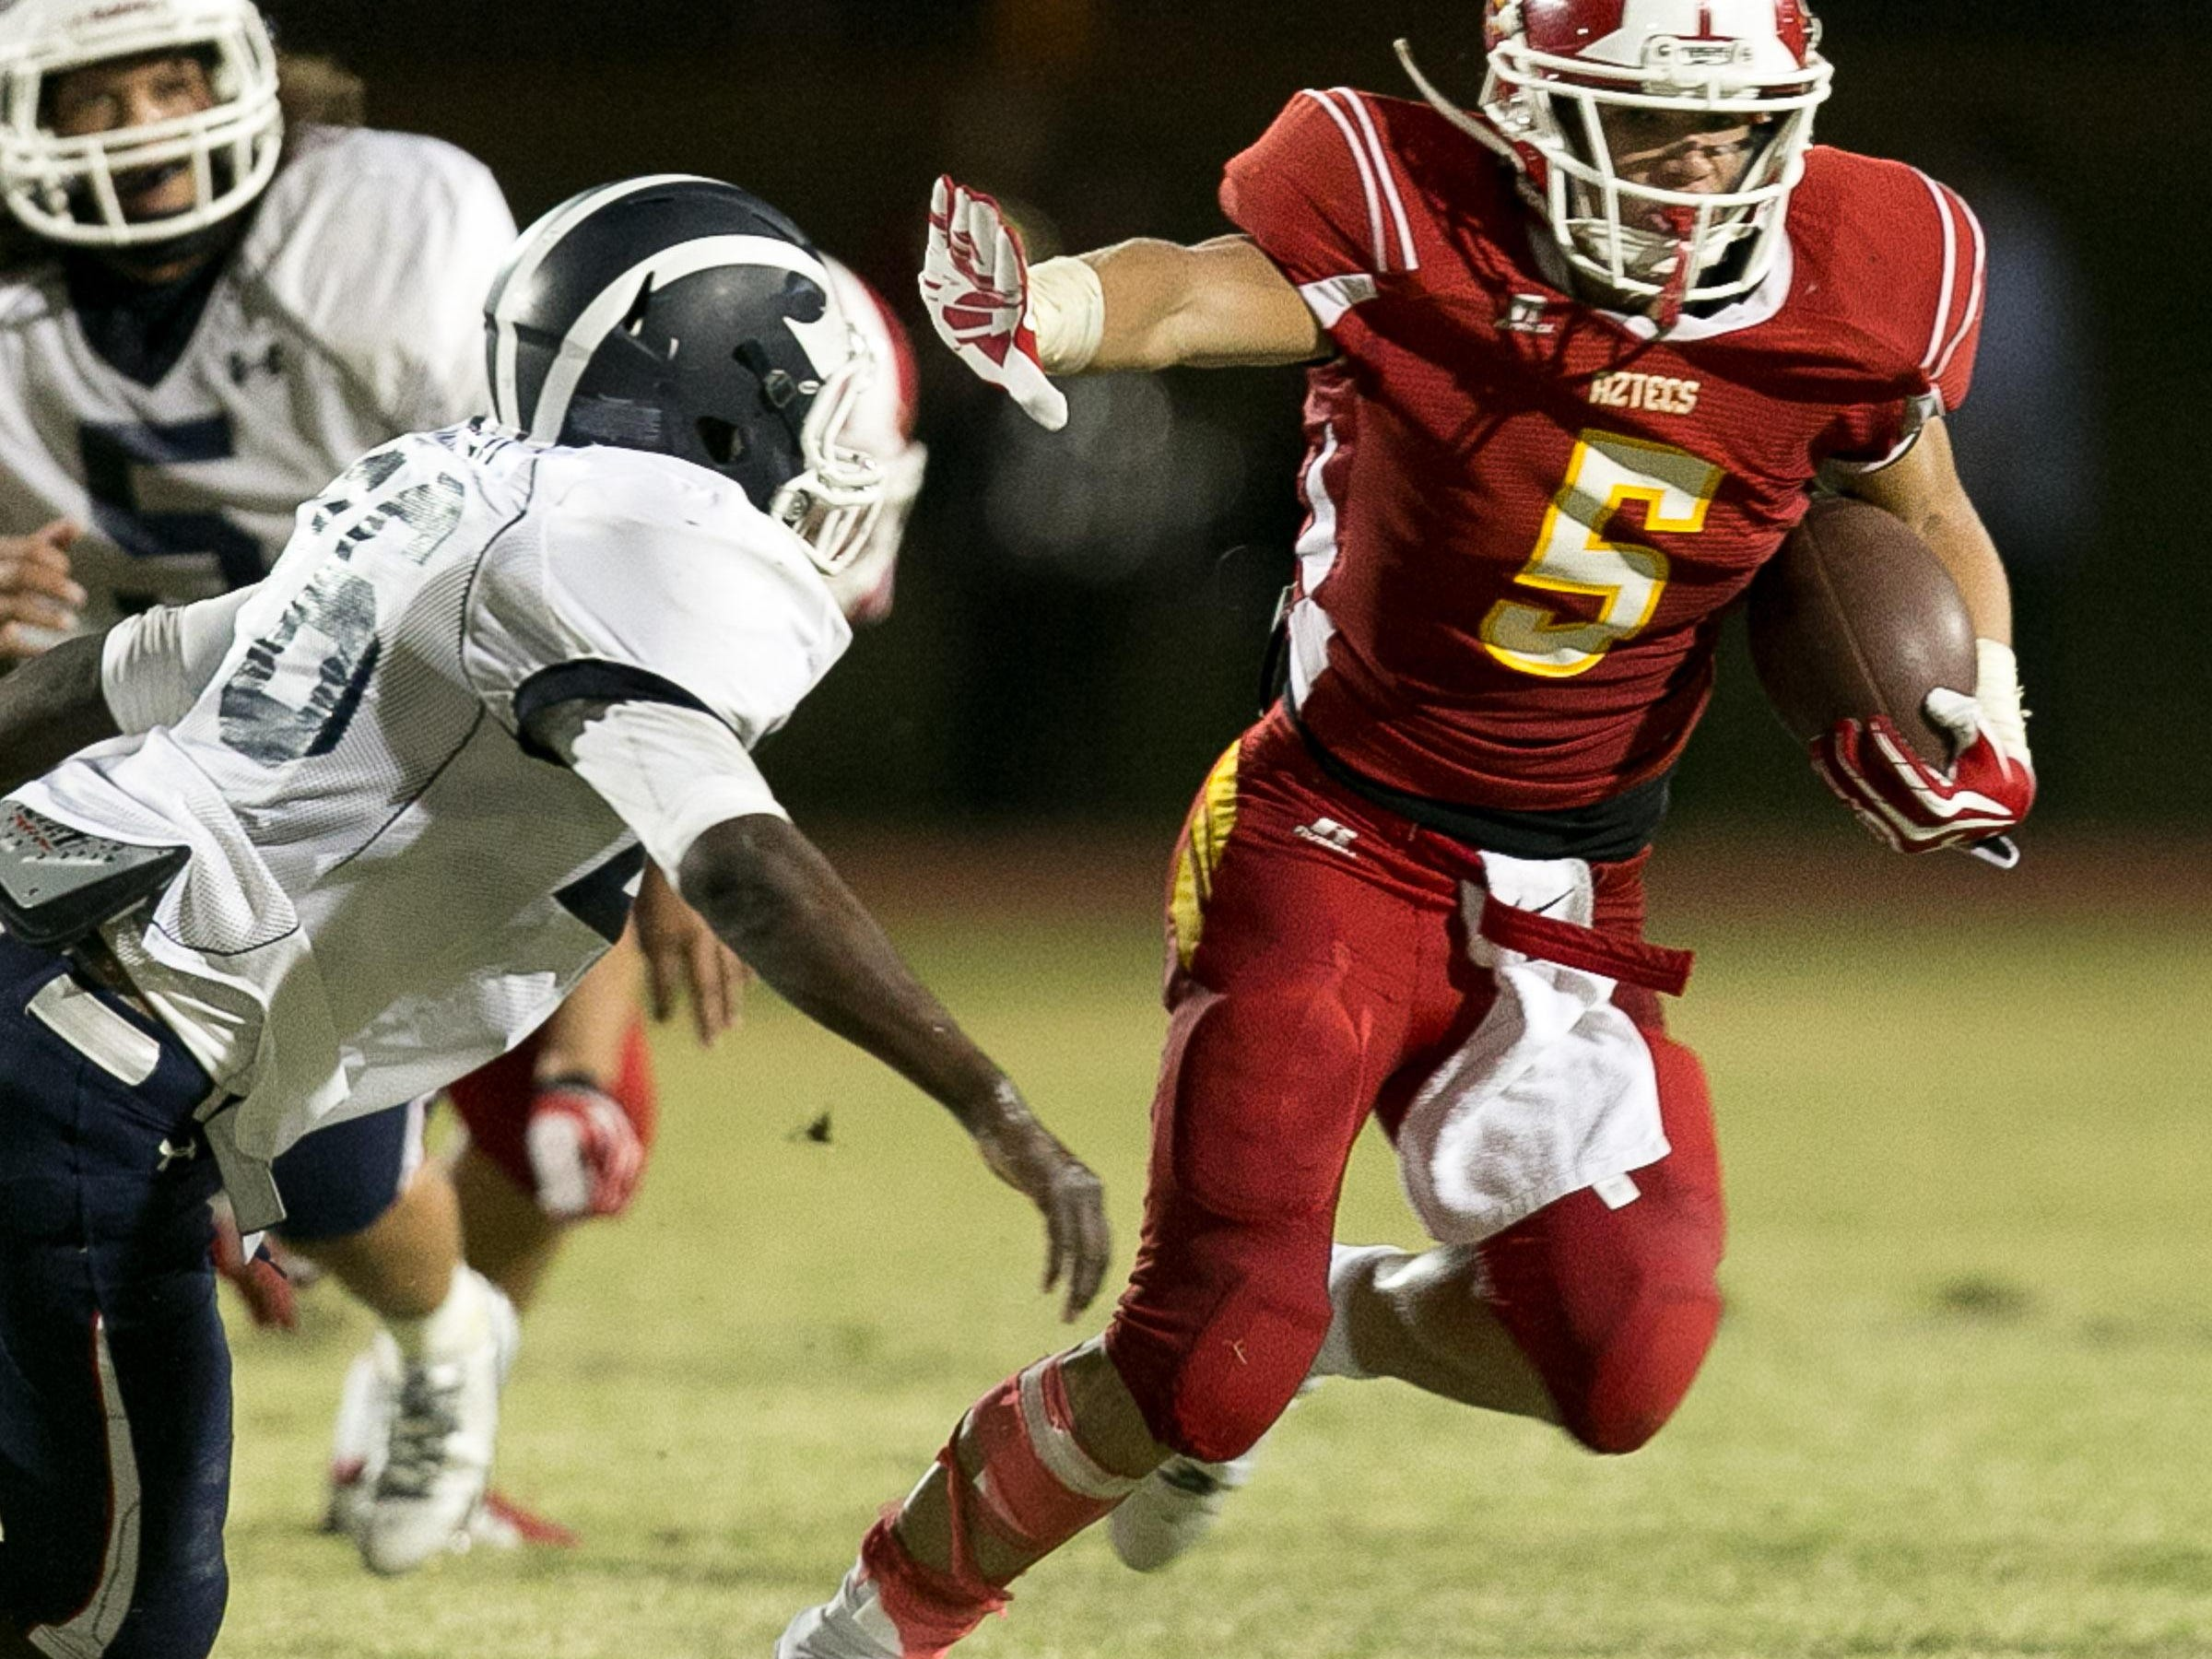 Palm Desert's Trae Riek (right) stiff-arms a Redlands defender back in 2013 when the Terriers defeated the Aztecs 35-29. Friday, Redlands returns to Palm Desert High School as the Aztecs try to fend off another loss to the Terriers.